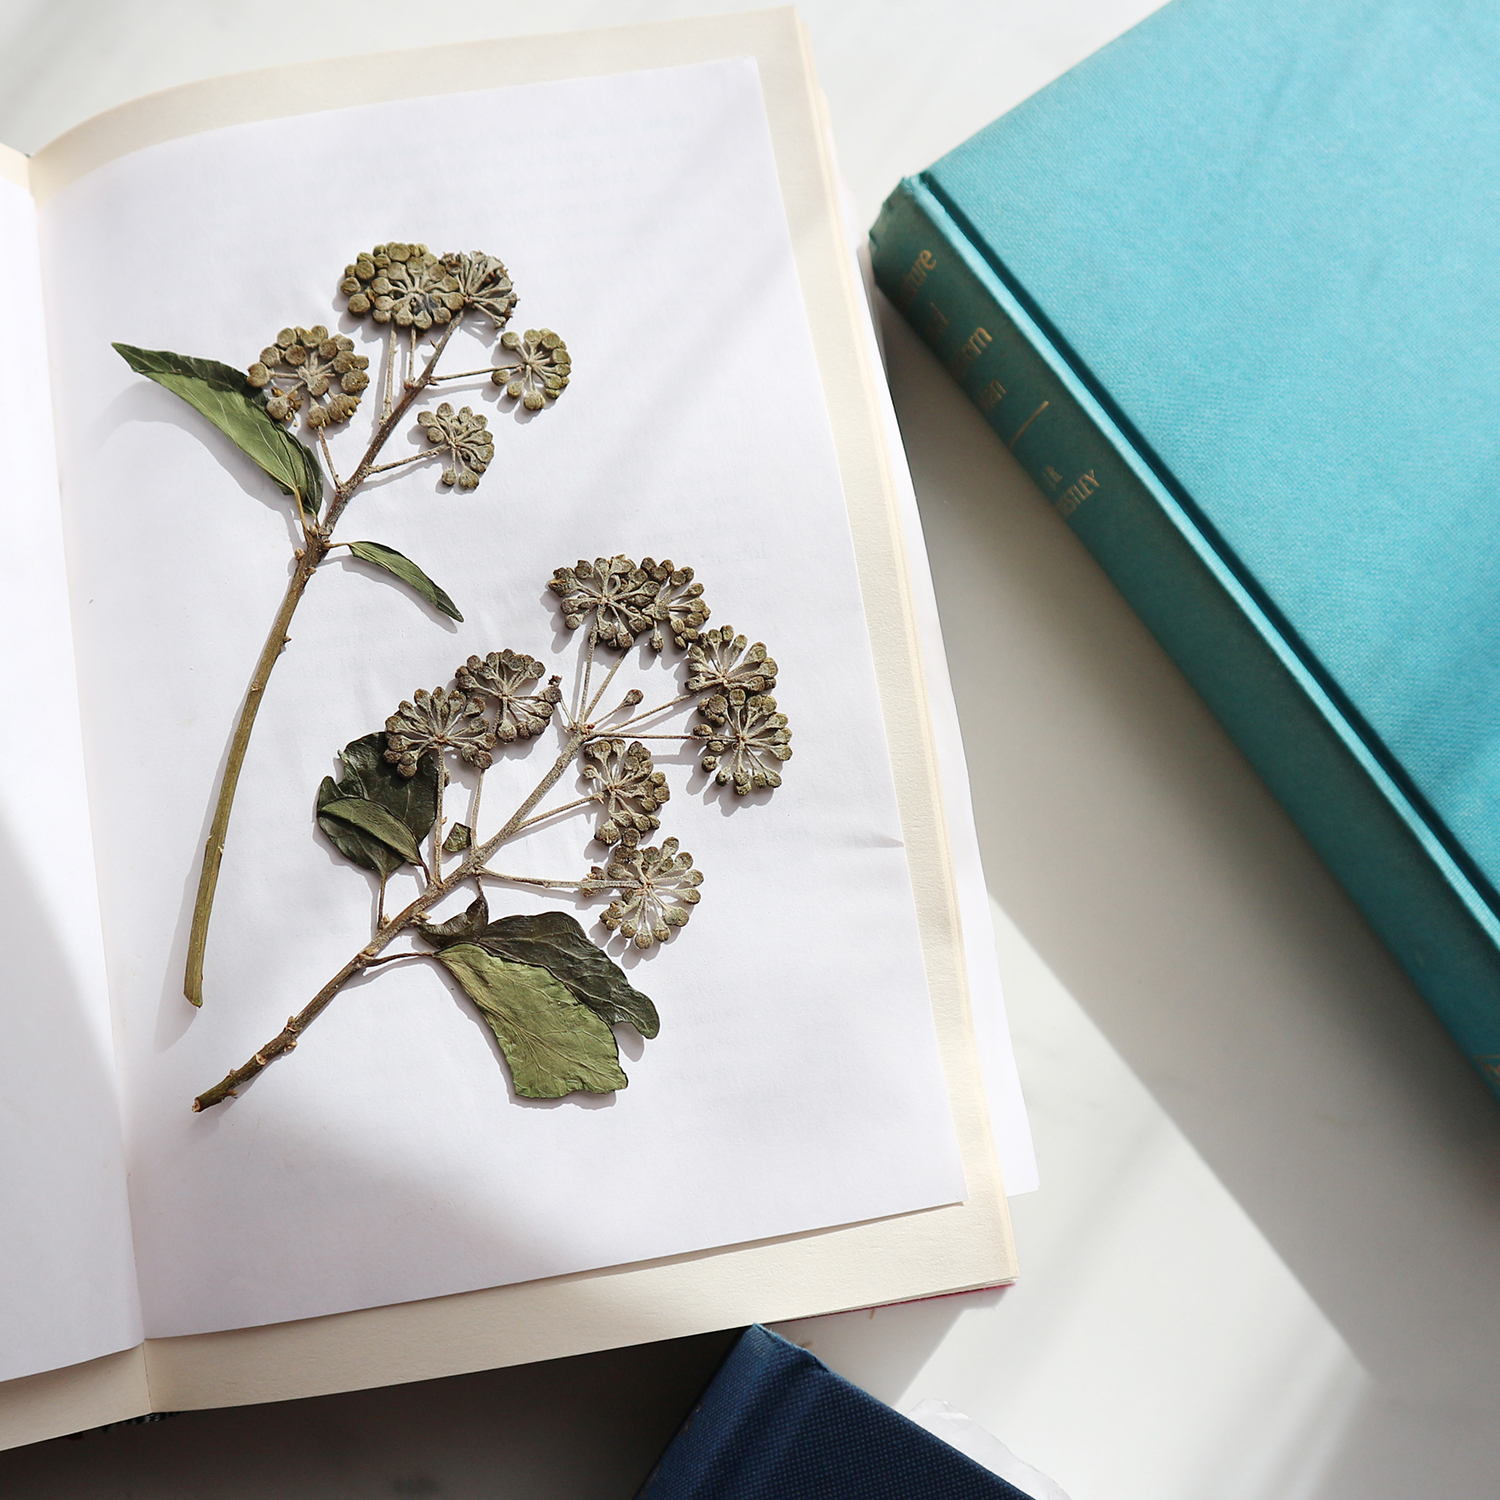 Pressing Flowers using a Book